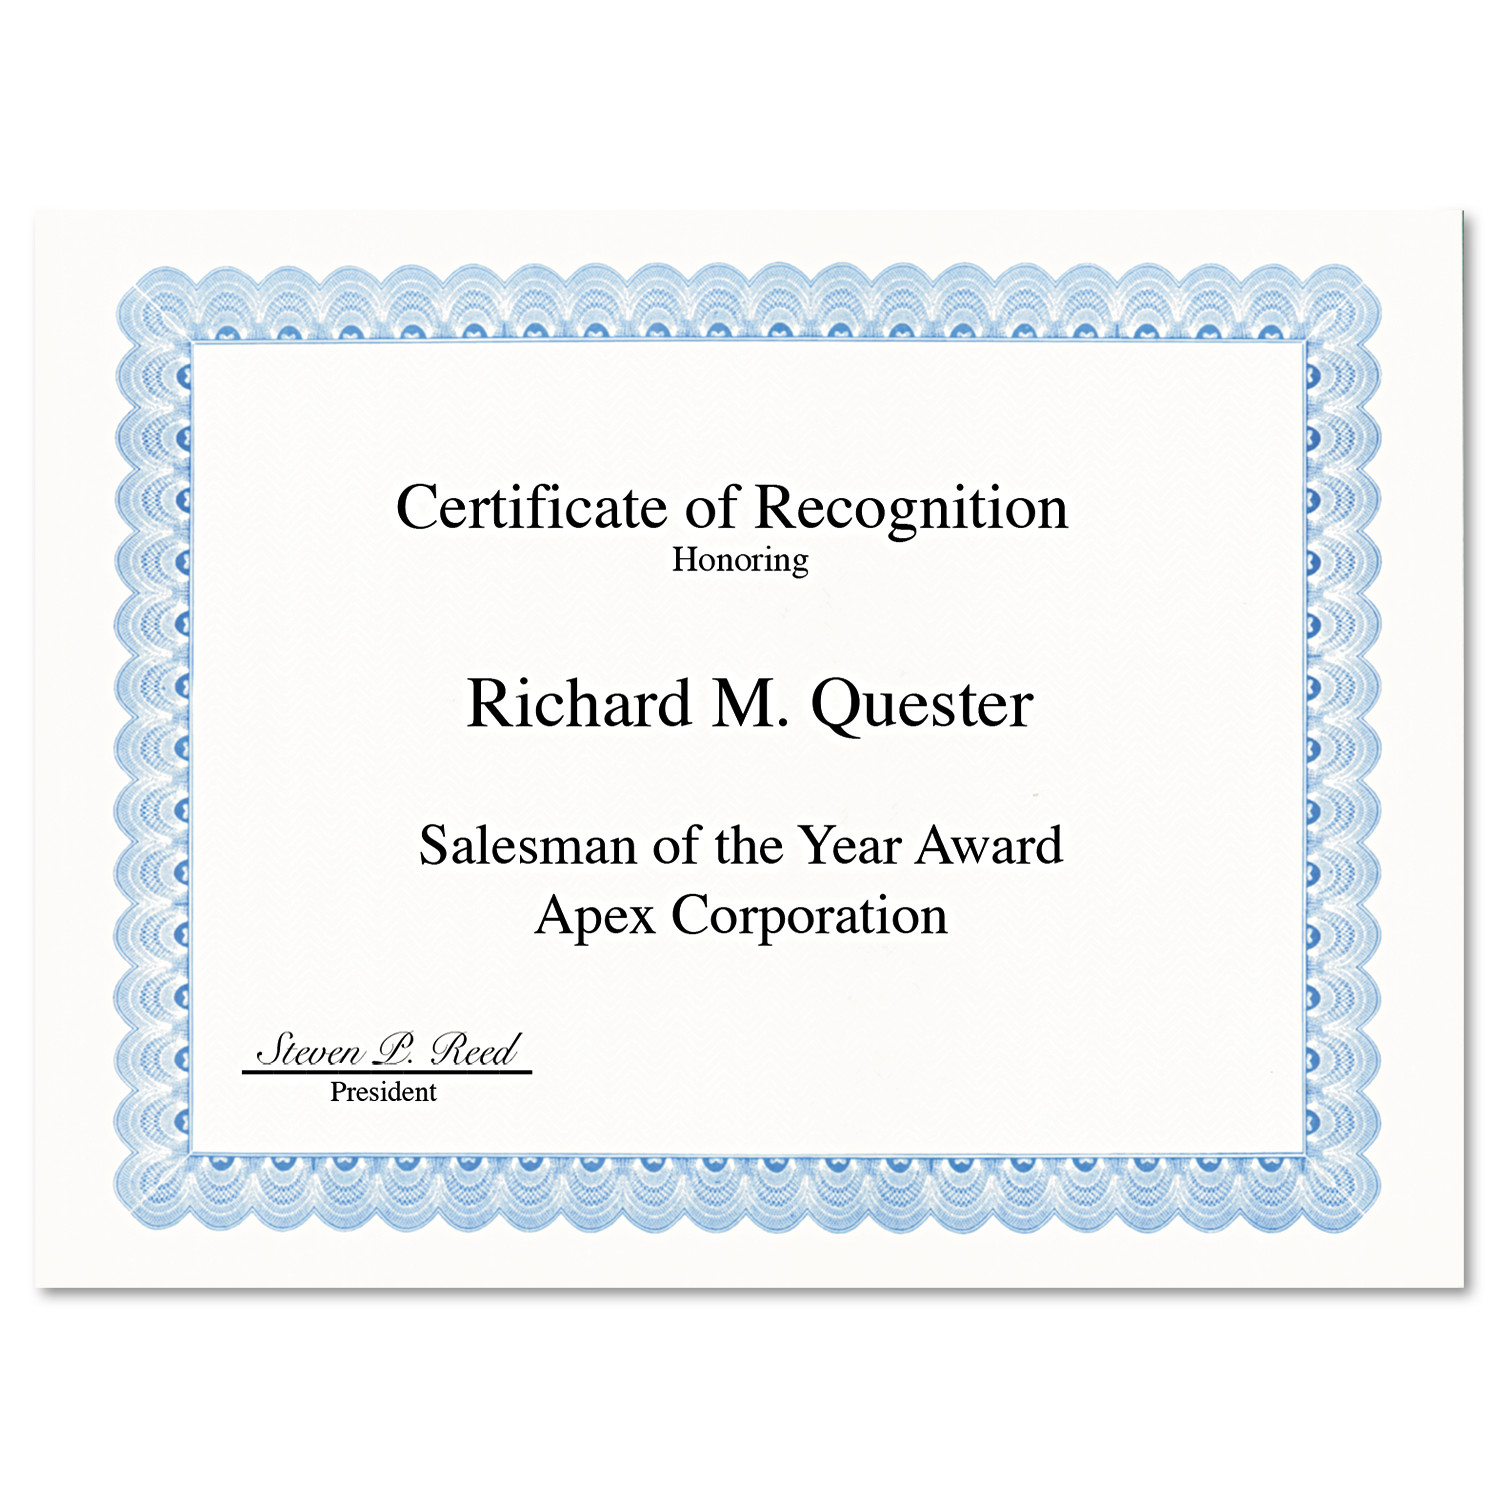 Geographics Parchment Paper Certificates, 8-1/2 x 11, Blue Conventional Border, 50/Pack -GEO20008